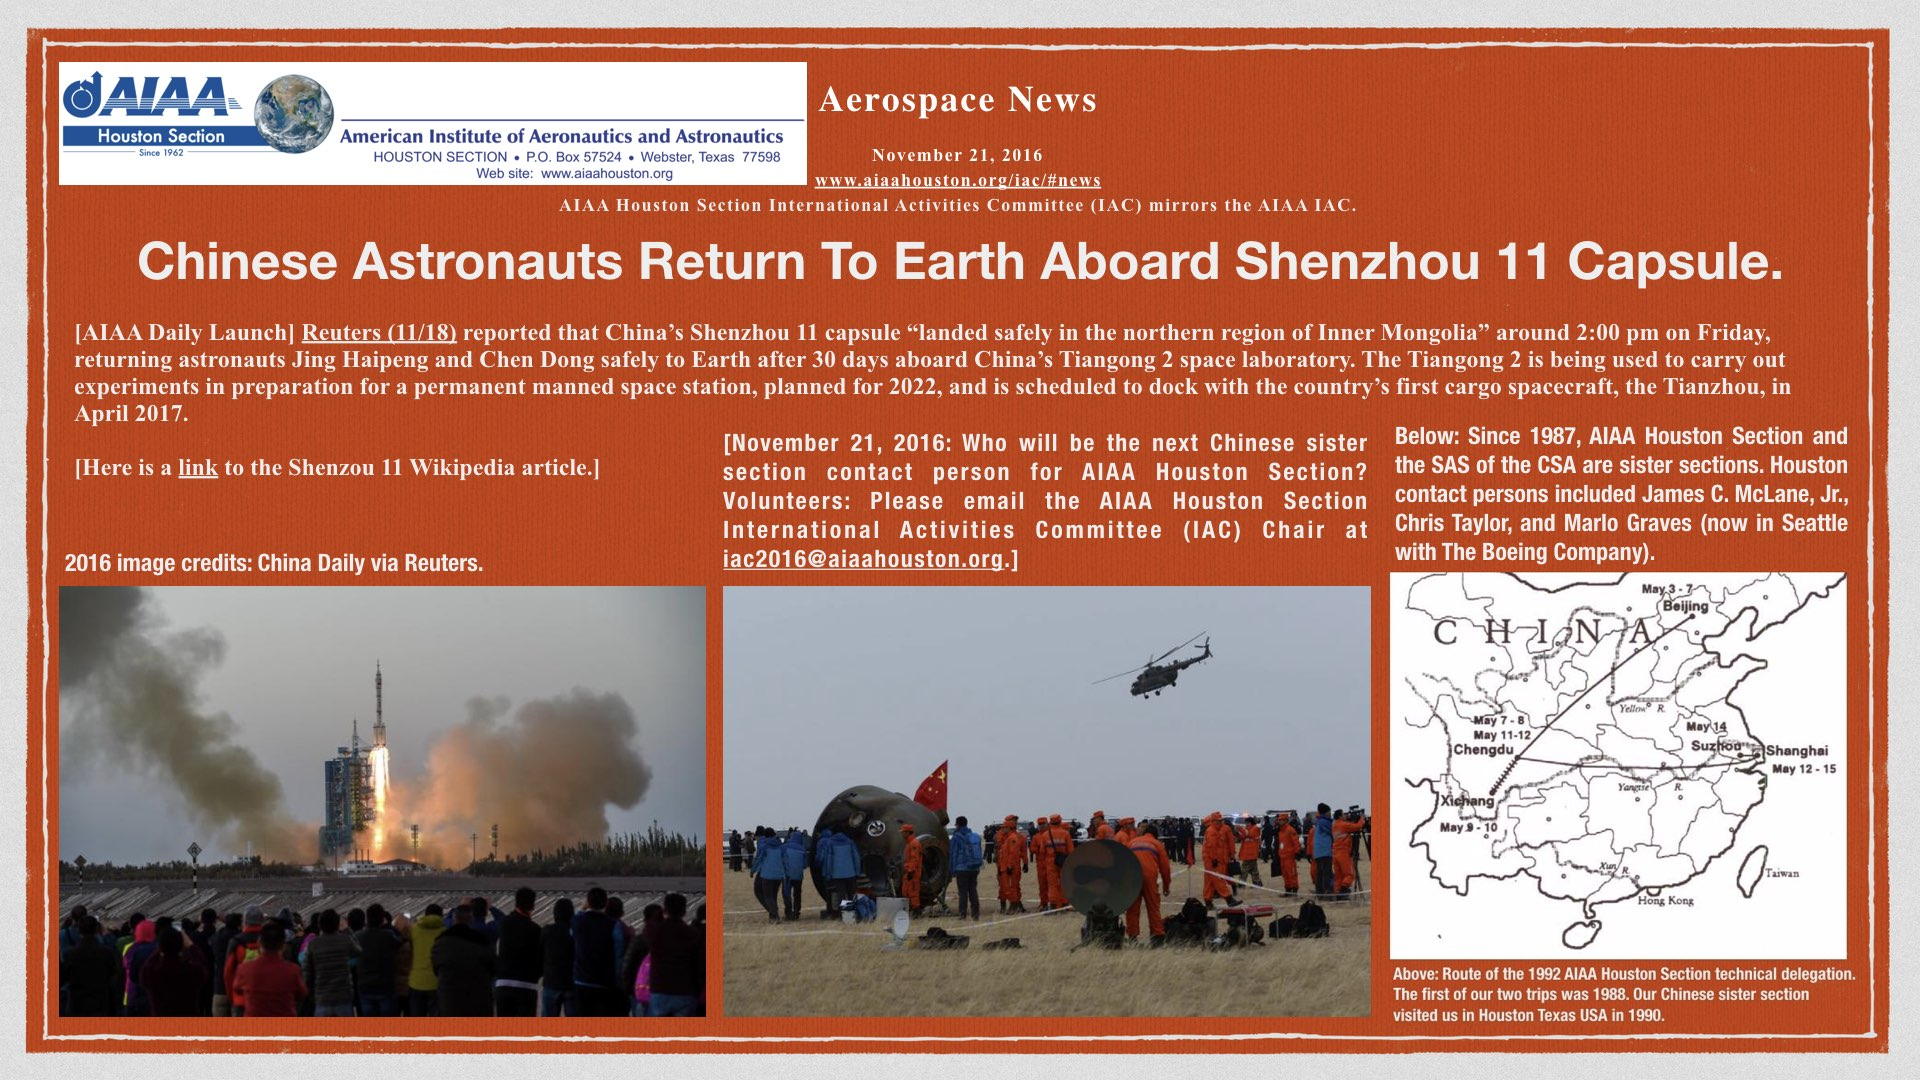 Above: Chinese Astronauts Return To Earth Aboard Shenzhou 11 Capsule.